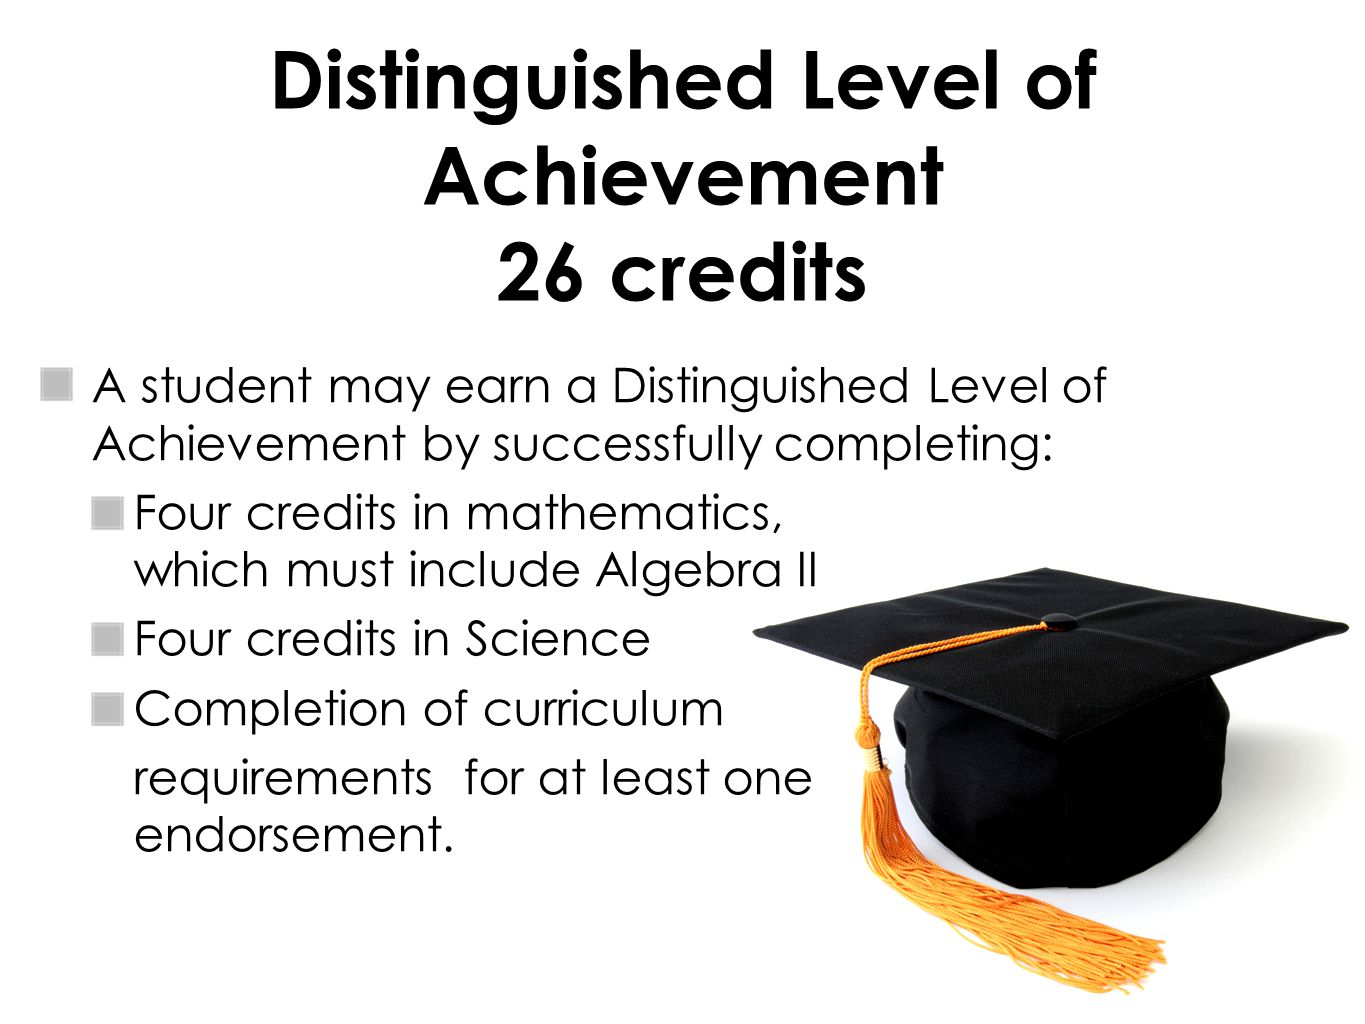 Distinguished Level of Achievement 26 credits A student may earn a Distinguished Level of Achievement by successfully completing: Four credits in mathematics, which must include Algebra II Four credits in Science Completion of curriculum requirements for at least one endorsement.